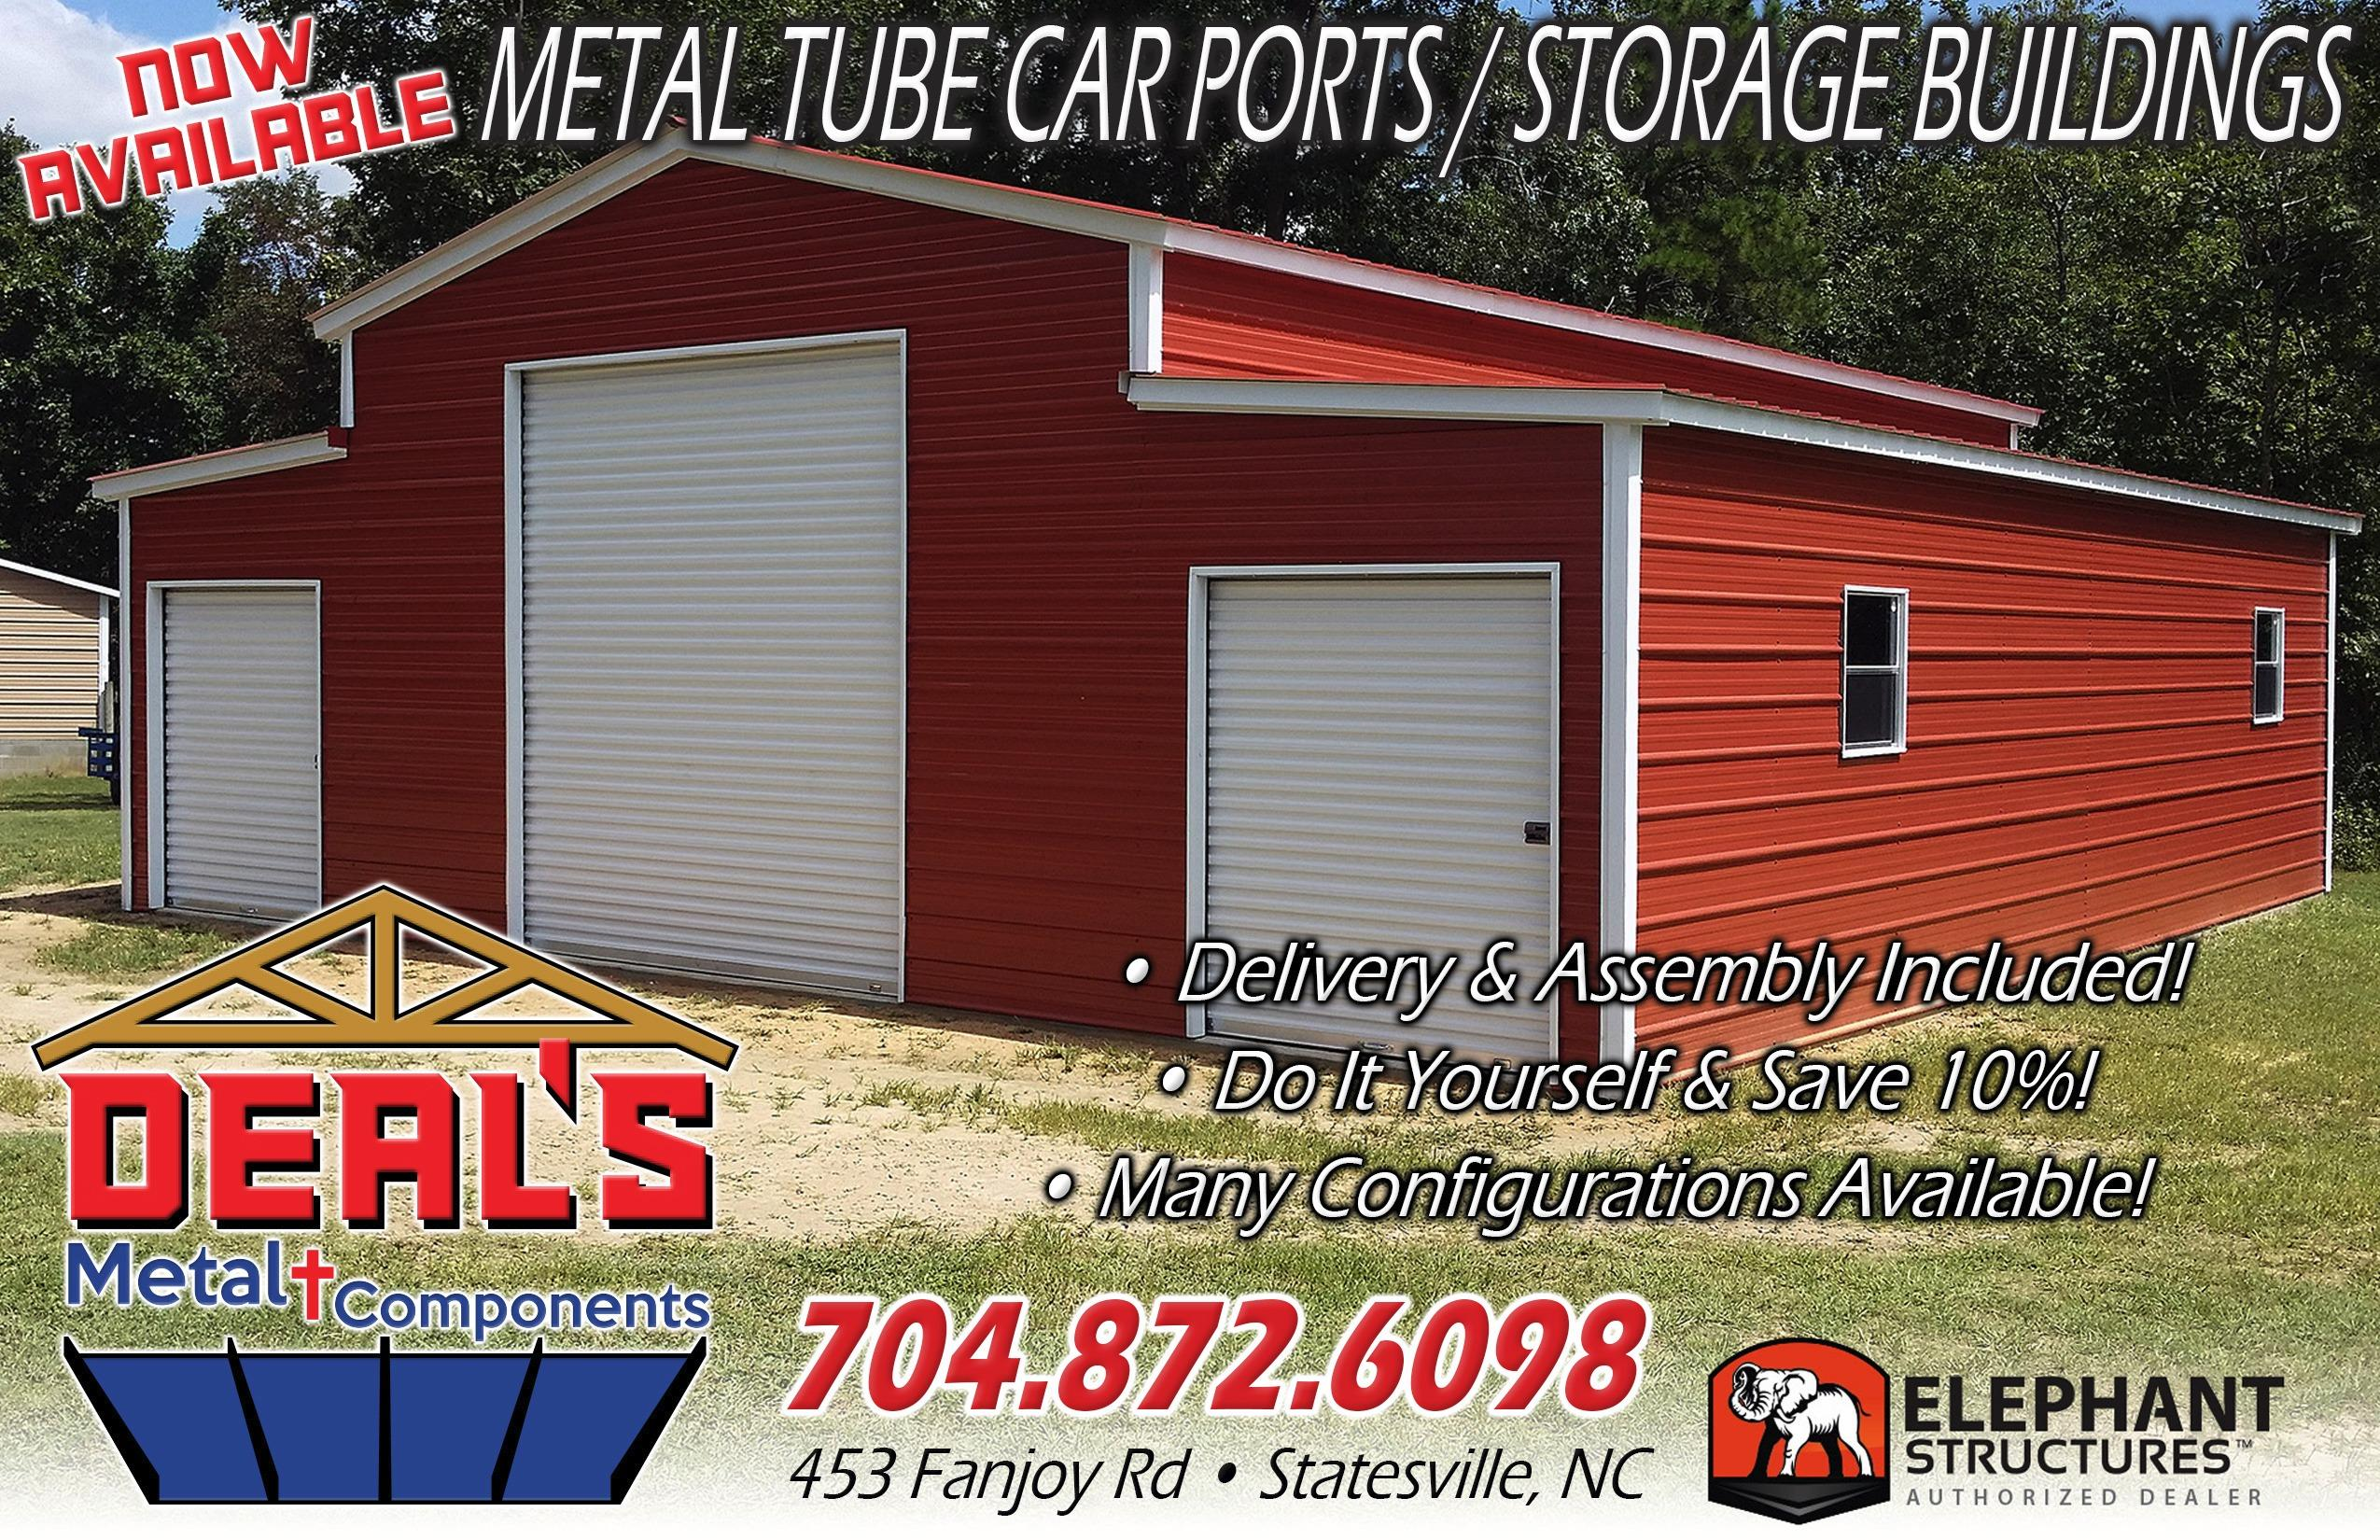 Deal S Metal In Statesville Nc Whitepages